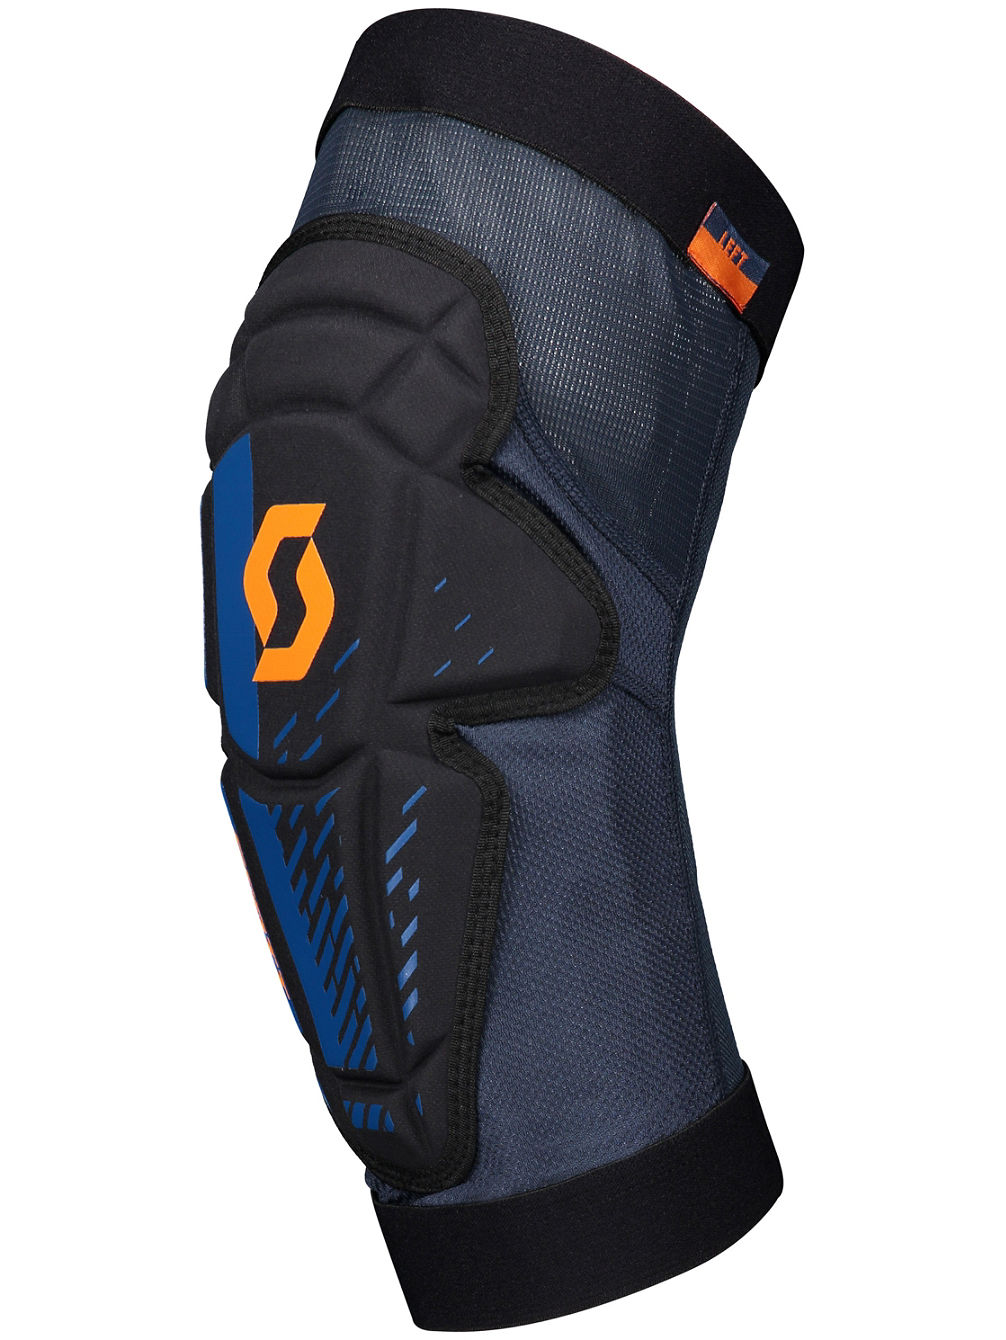 Mission Knee Pads